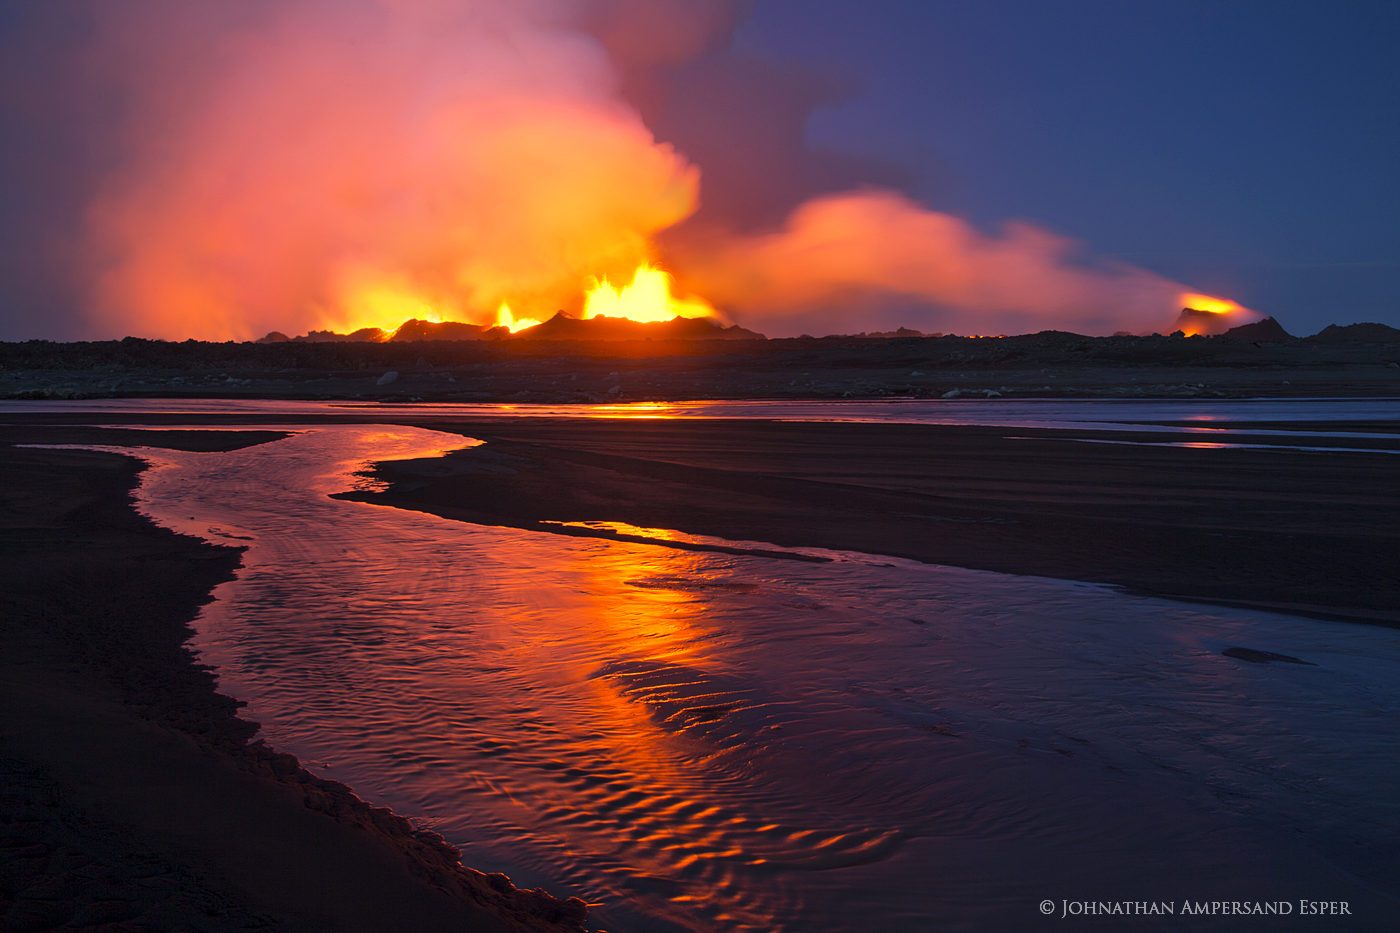 2014, Baugur, Bárðarbunga, Holuhraun, Iceland, crater, erupting, eruption, flow, glow, lava, lava fountain, red, red glow, sky, photo